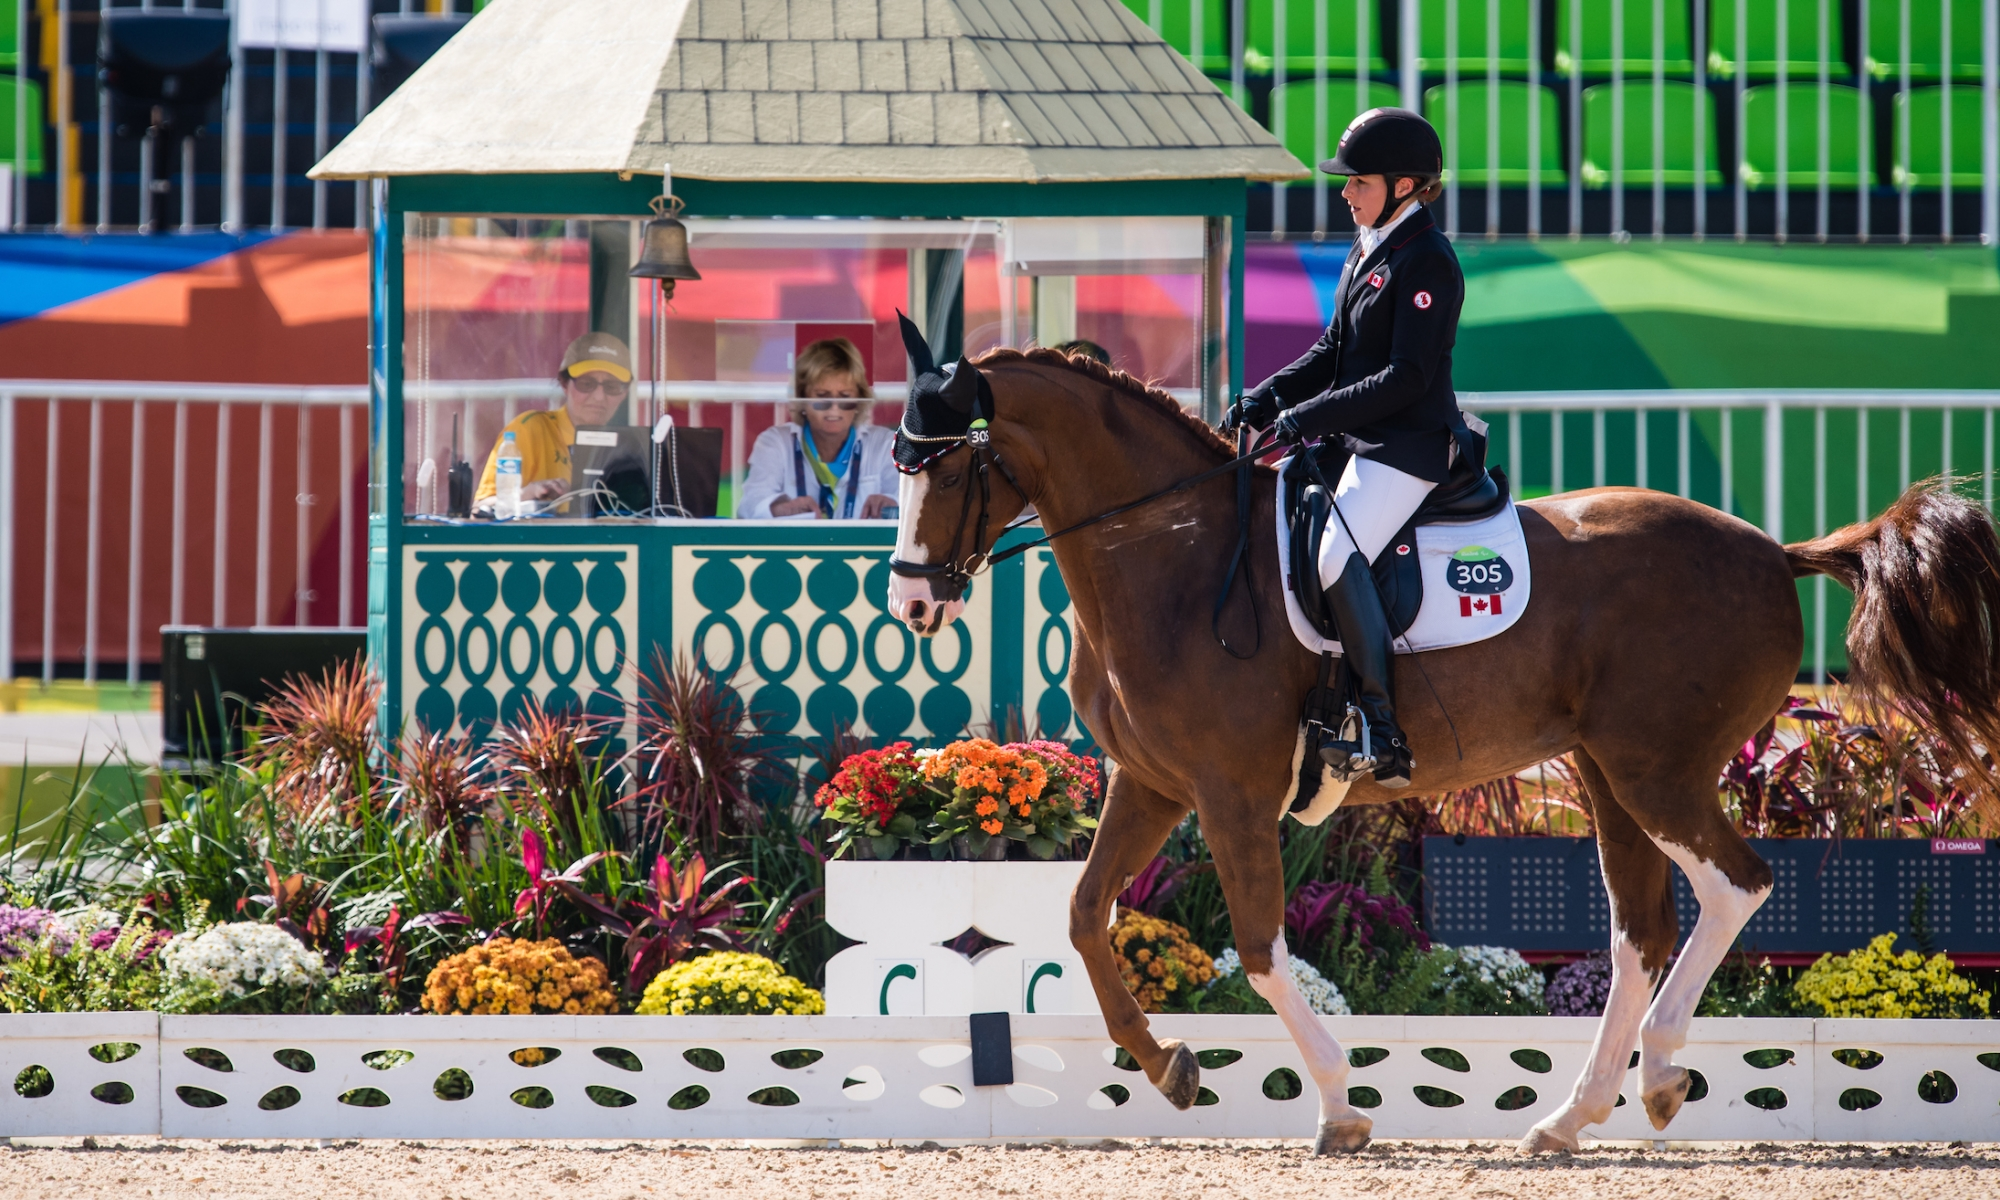 Sheffield in dressage